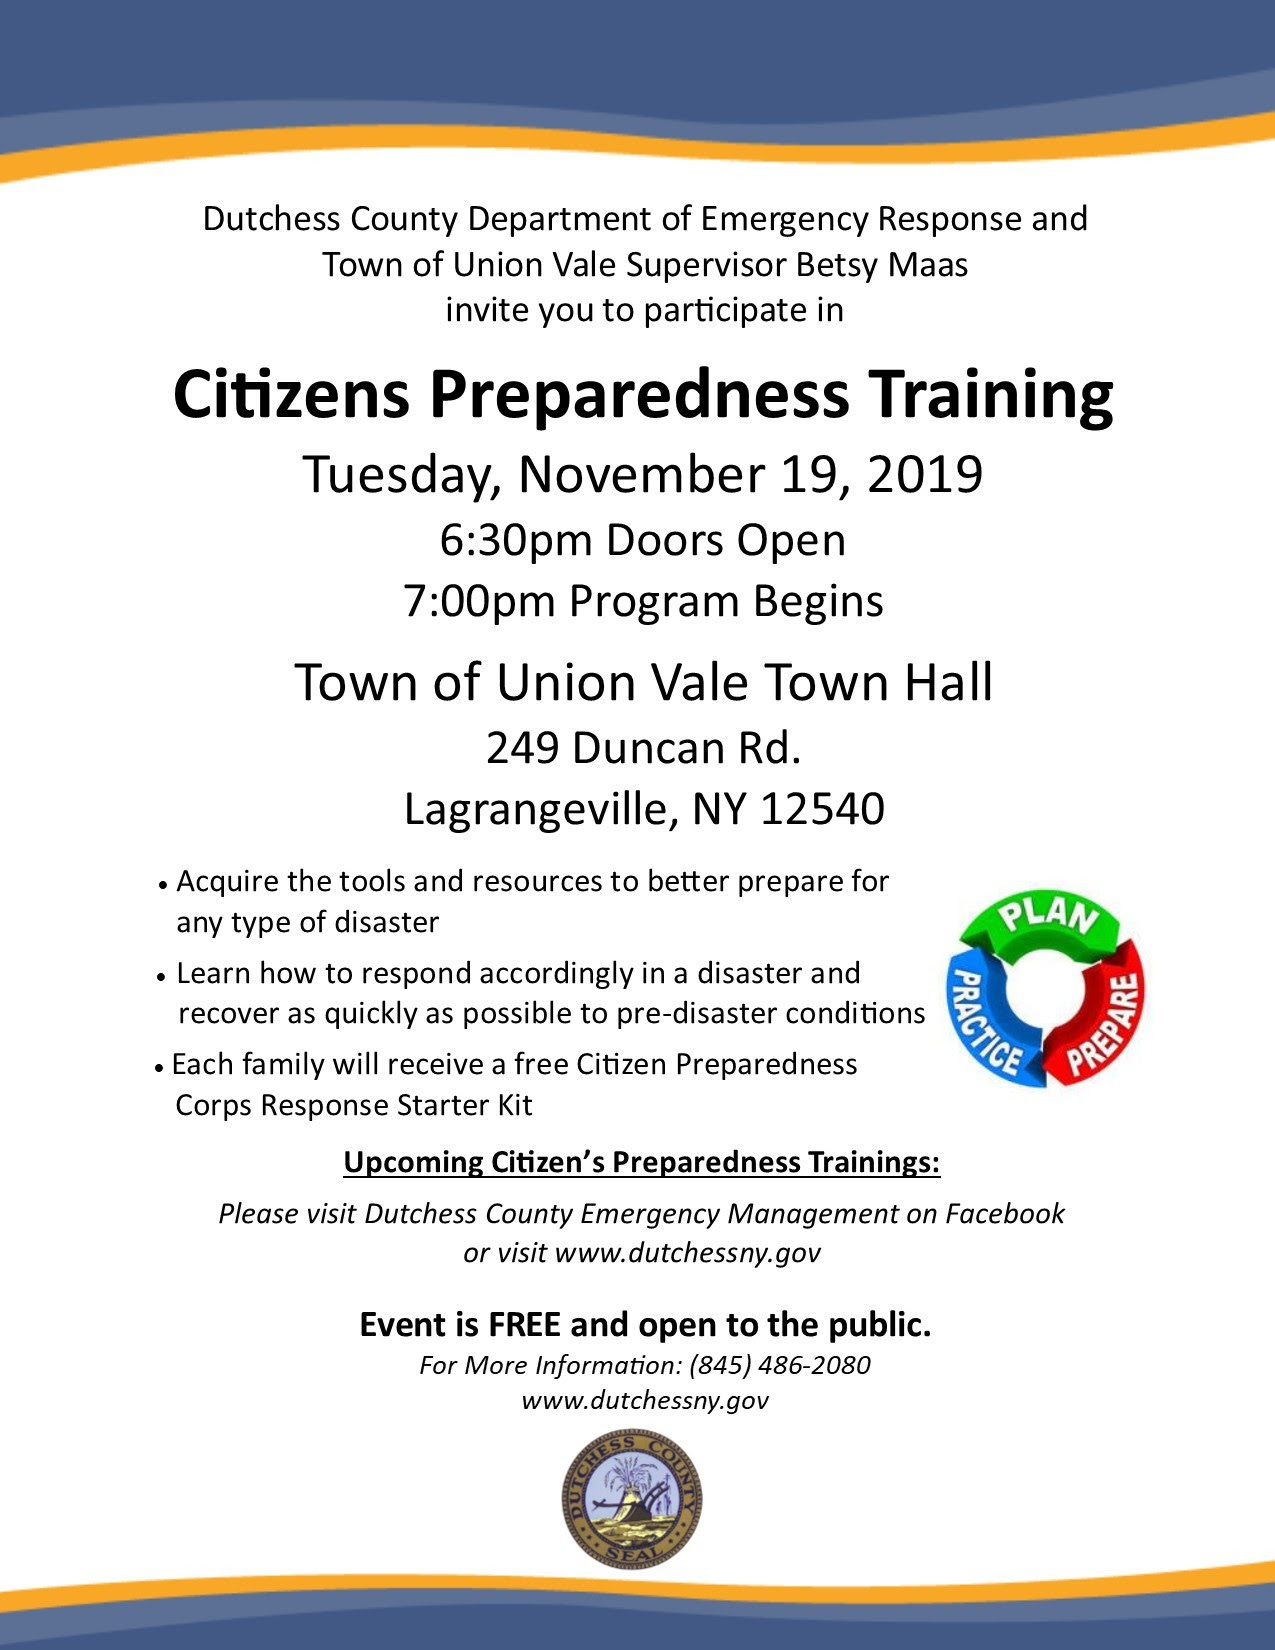 Citizen's Preparedness Training coming to Town of Union Vale Nov 19th